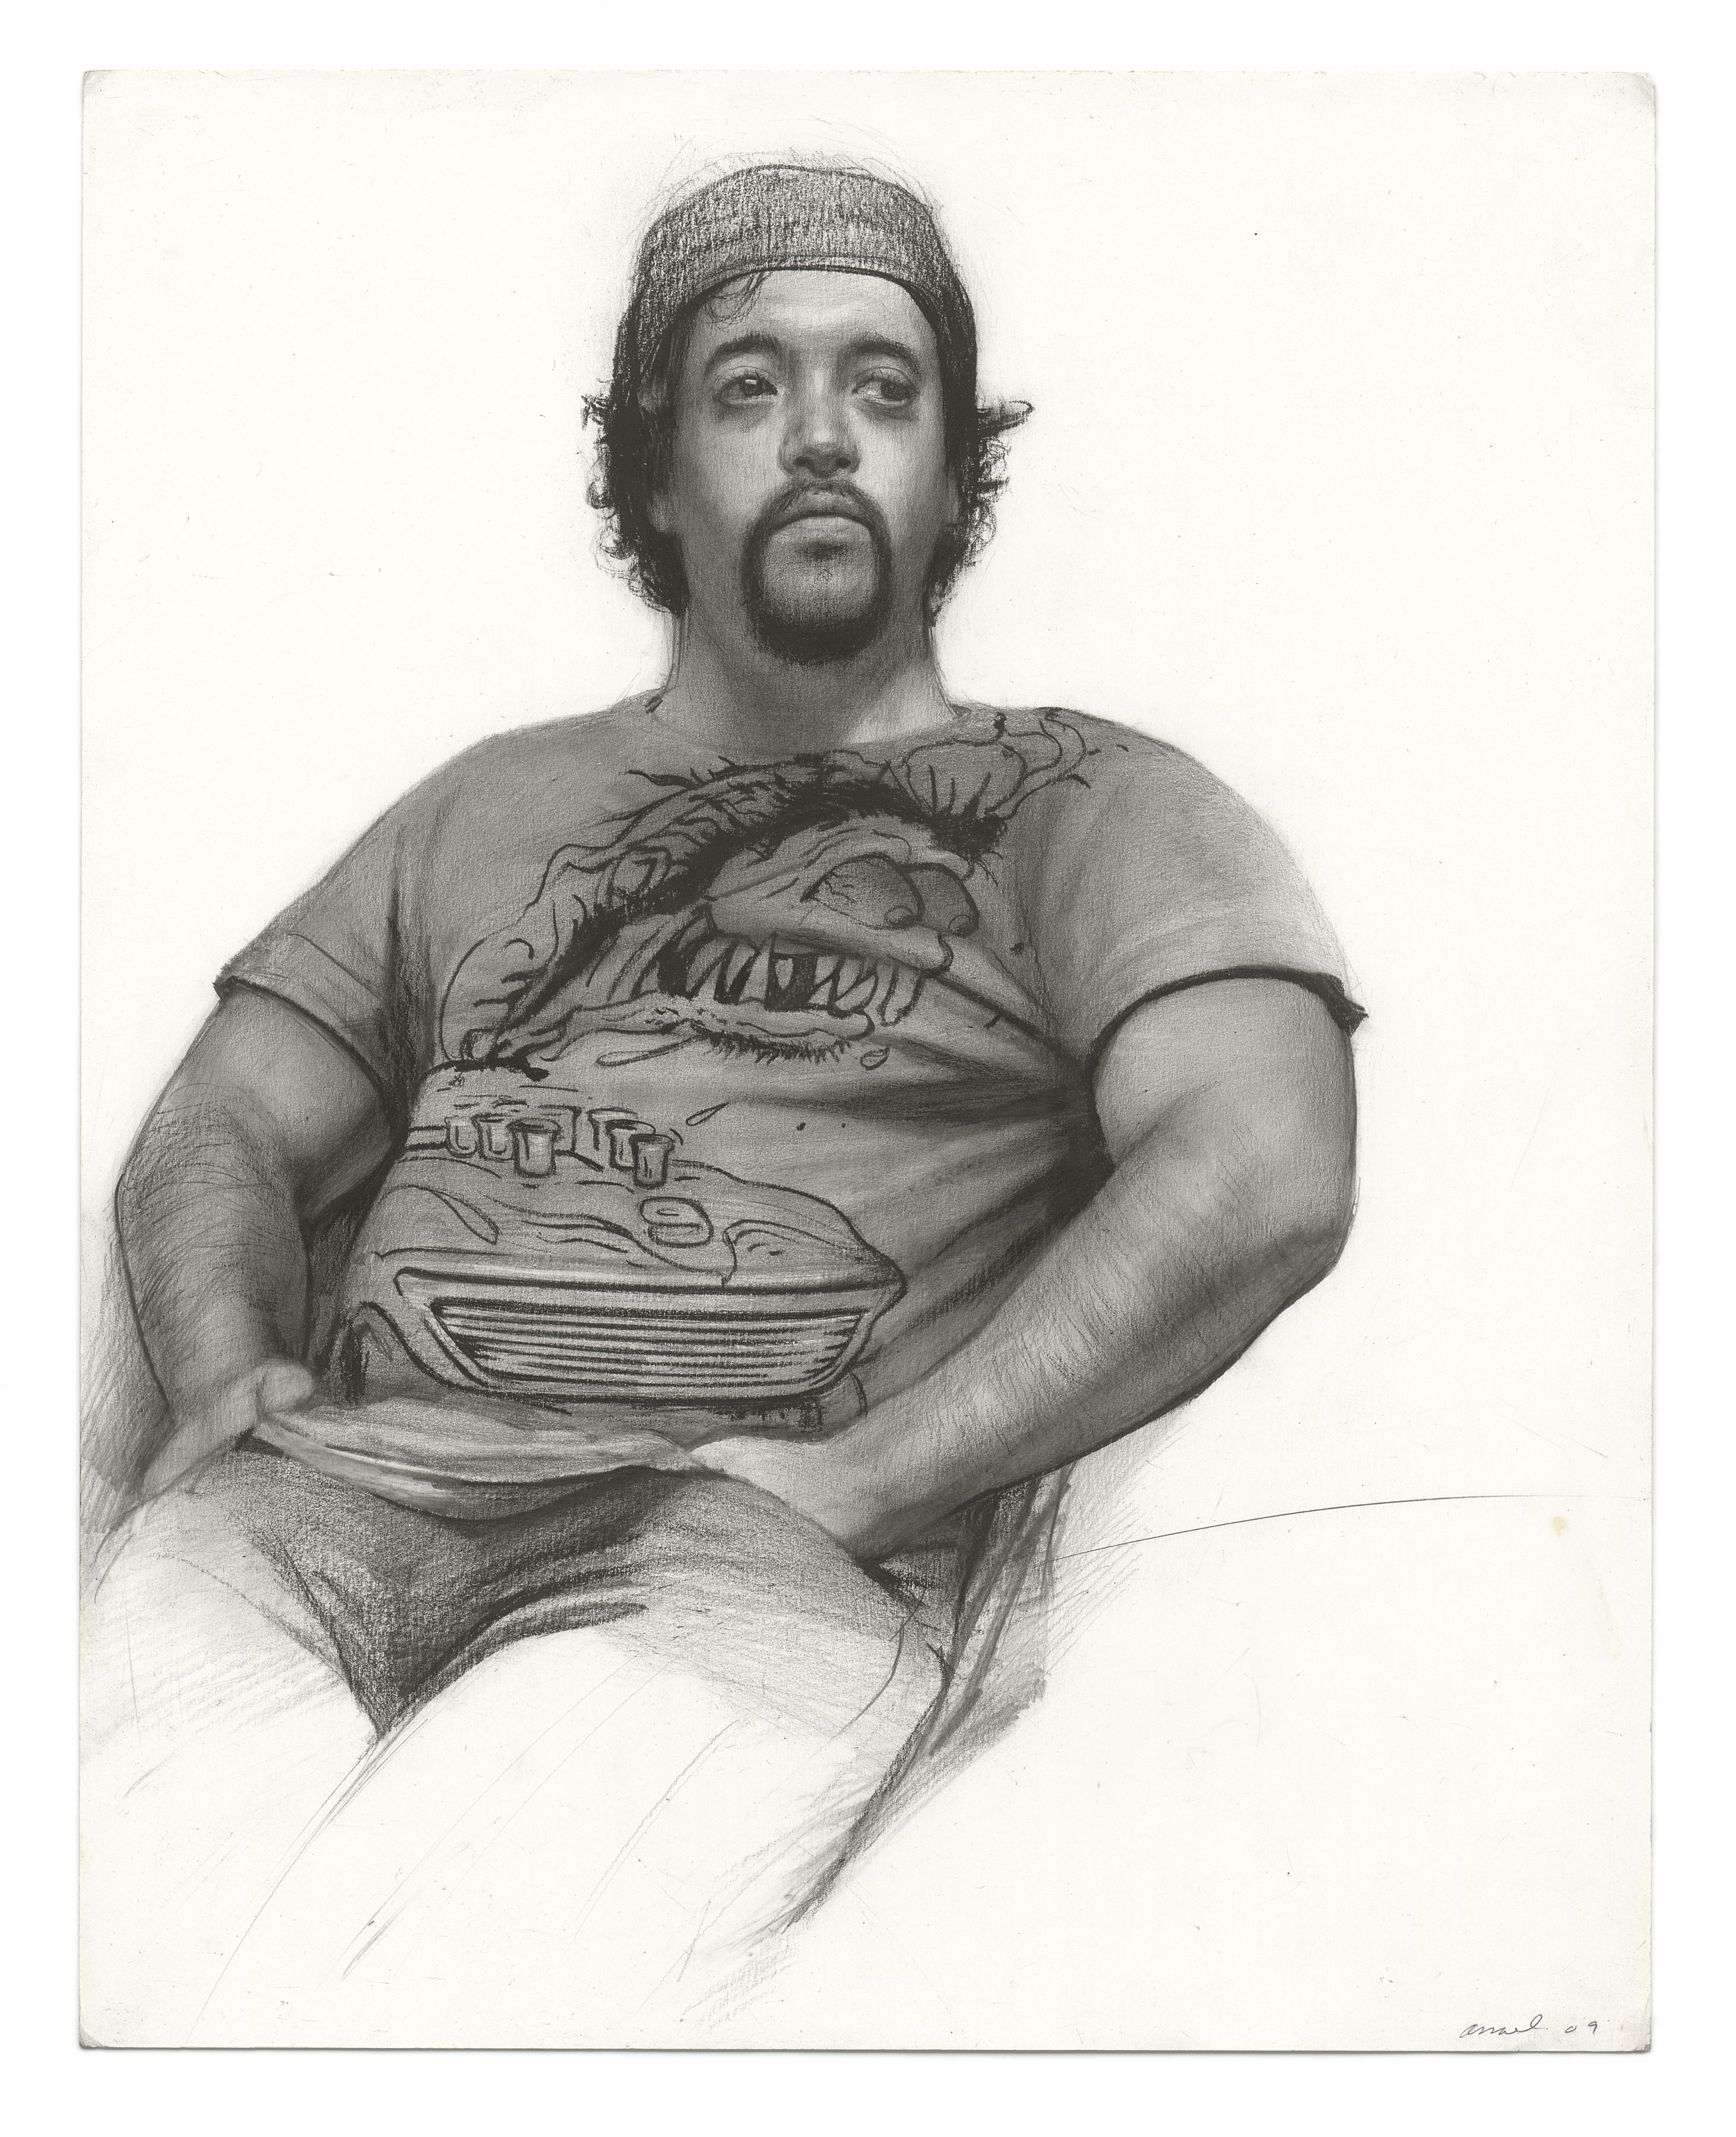 Steven Assael, Sal, 2009, graphite and crayon on paper, 14 x 11 1/4 inches